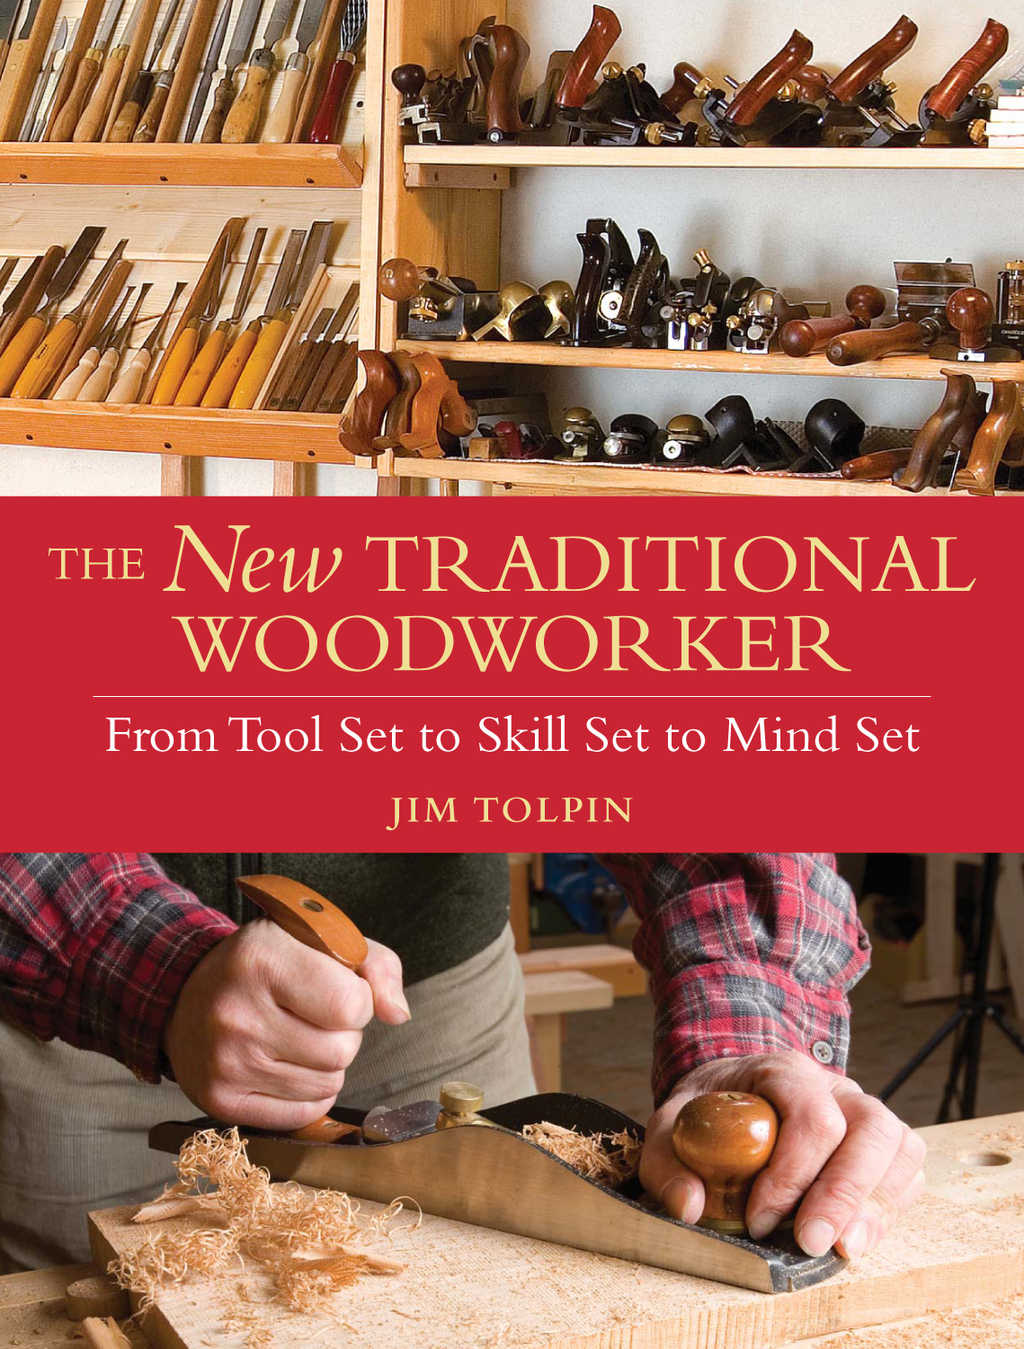 The New Traditional Woodworker From Tool Set to Skill Set to Mind Set